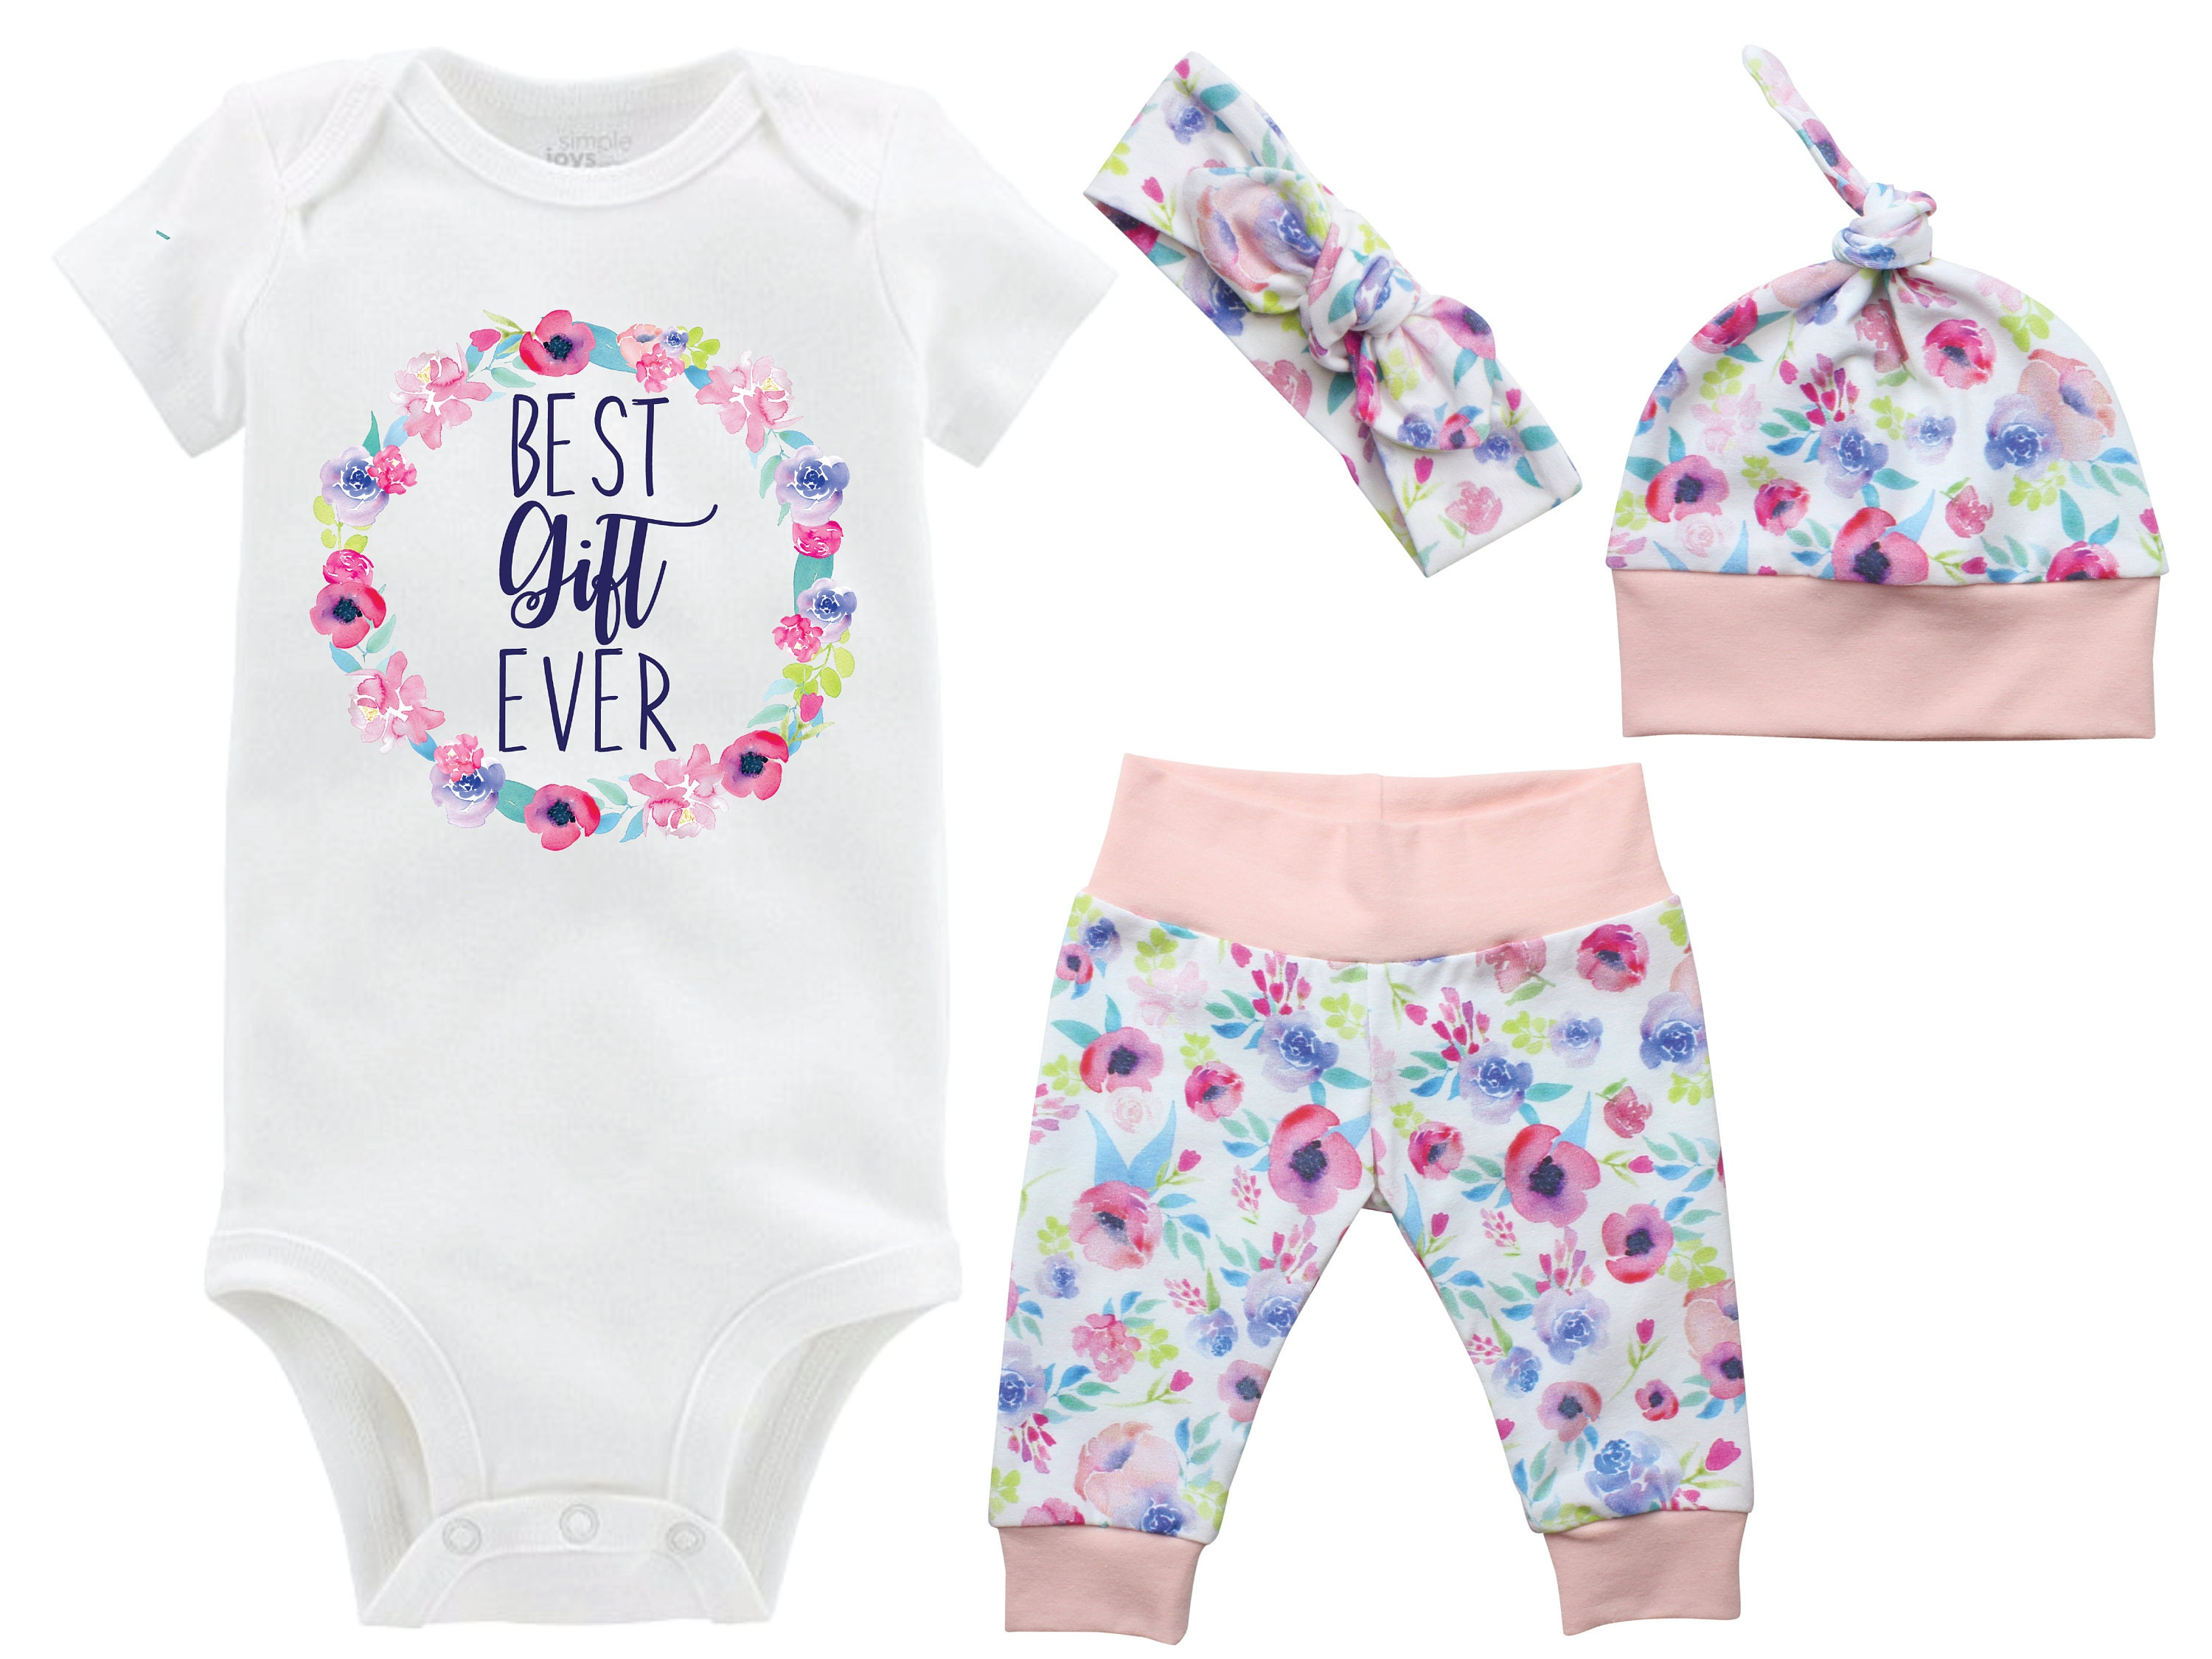 80d97730c Best Gift Ever Girl Coming Home Outfit Onesie Infertility Onesie Infant  Watercolor Floral Yoga Leggings Top Knot Hat Headband Blessing. gallery  photo ...